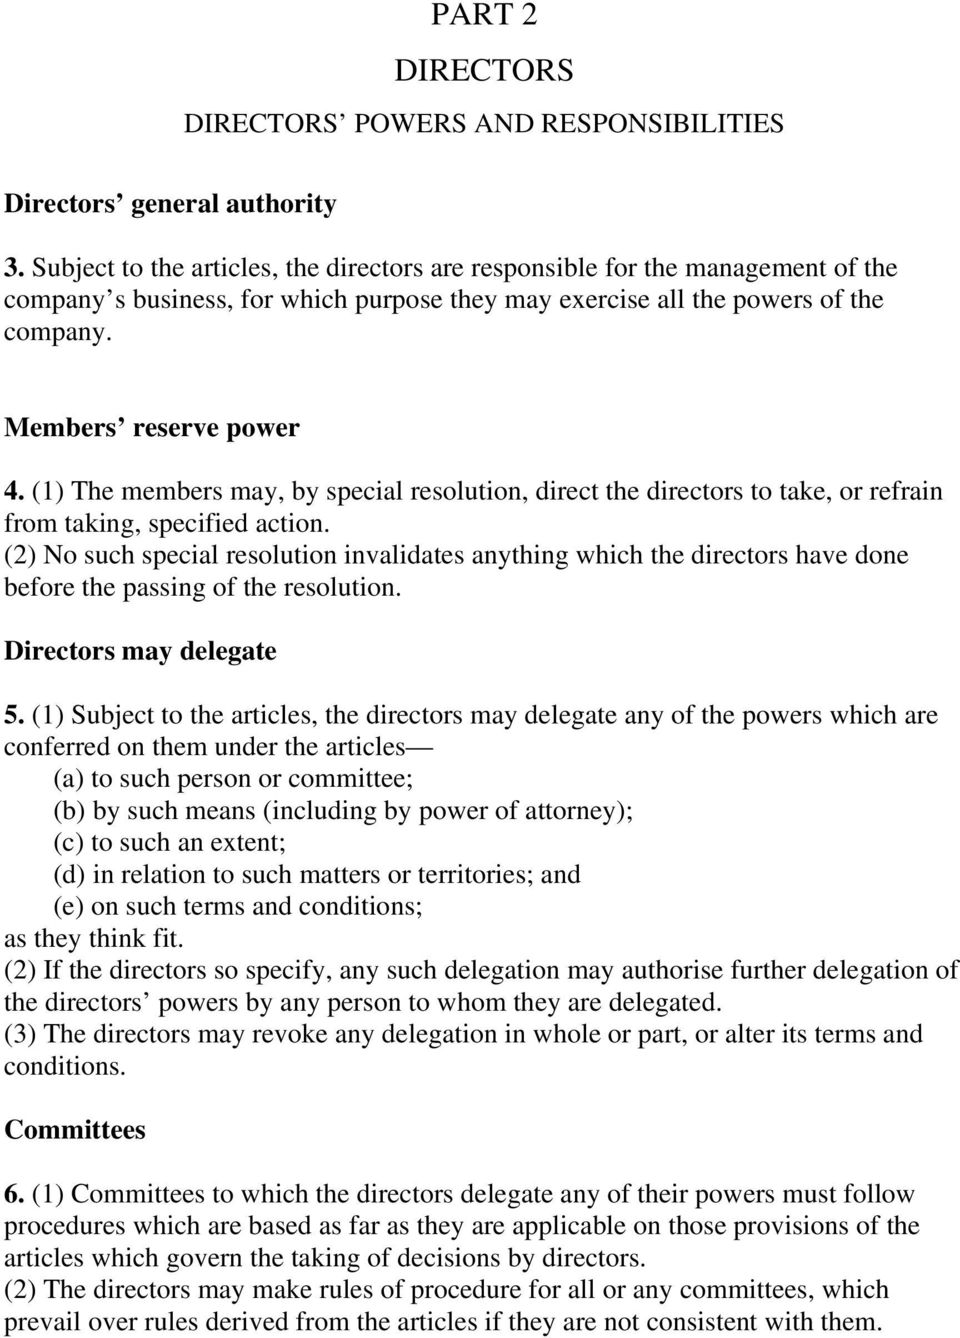 (1) The members may, by special resolution, direct the directors to take, or refrain from taking, specified action.